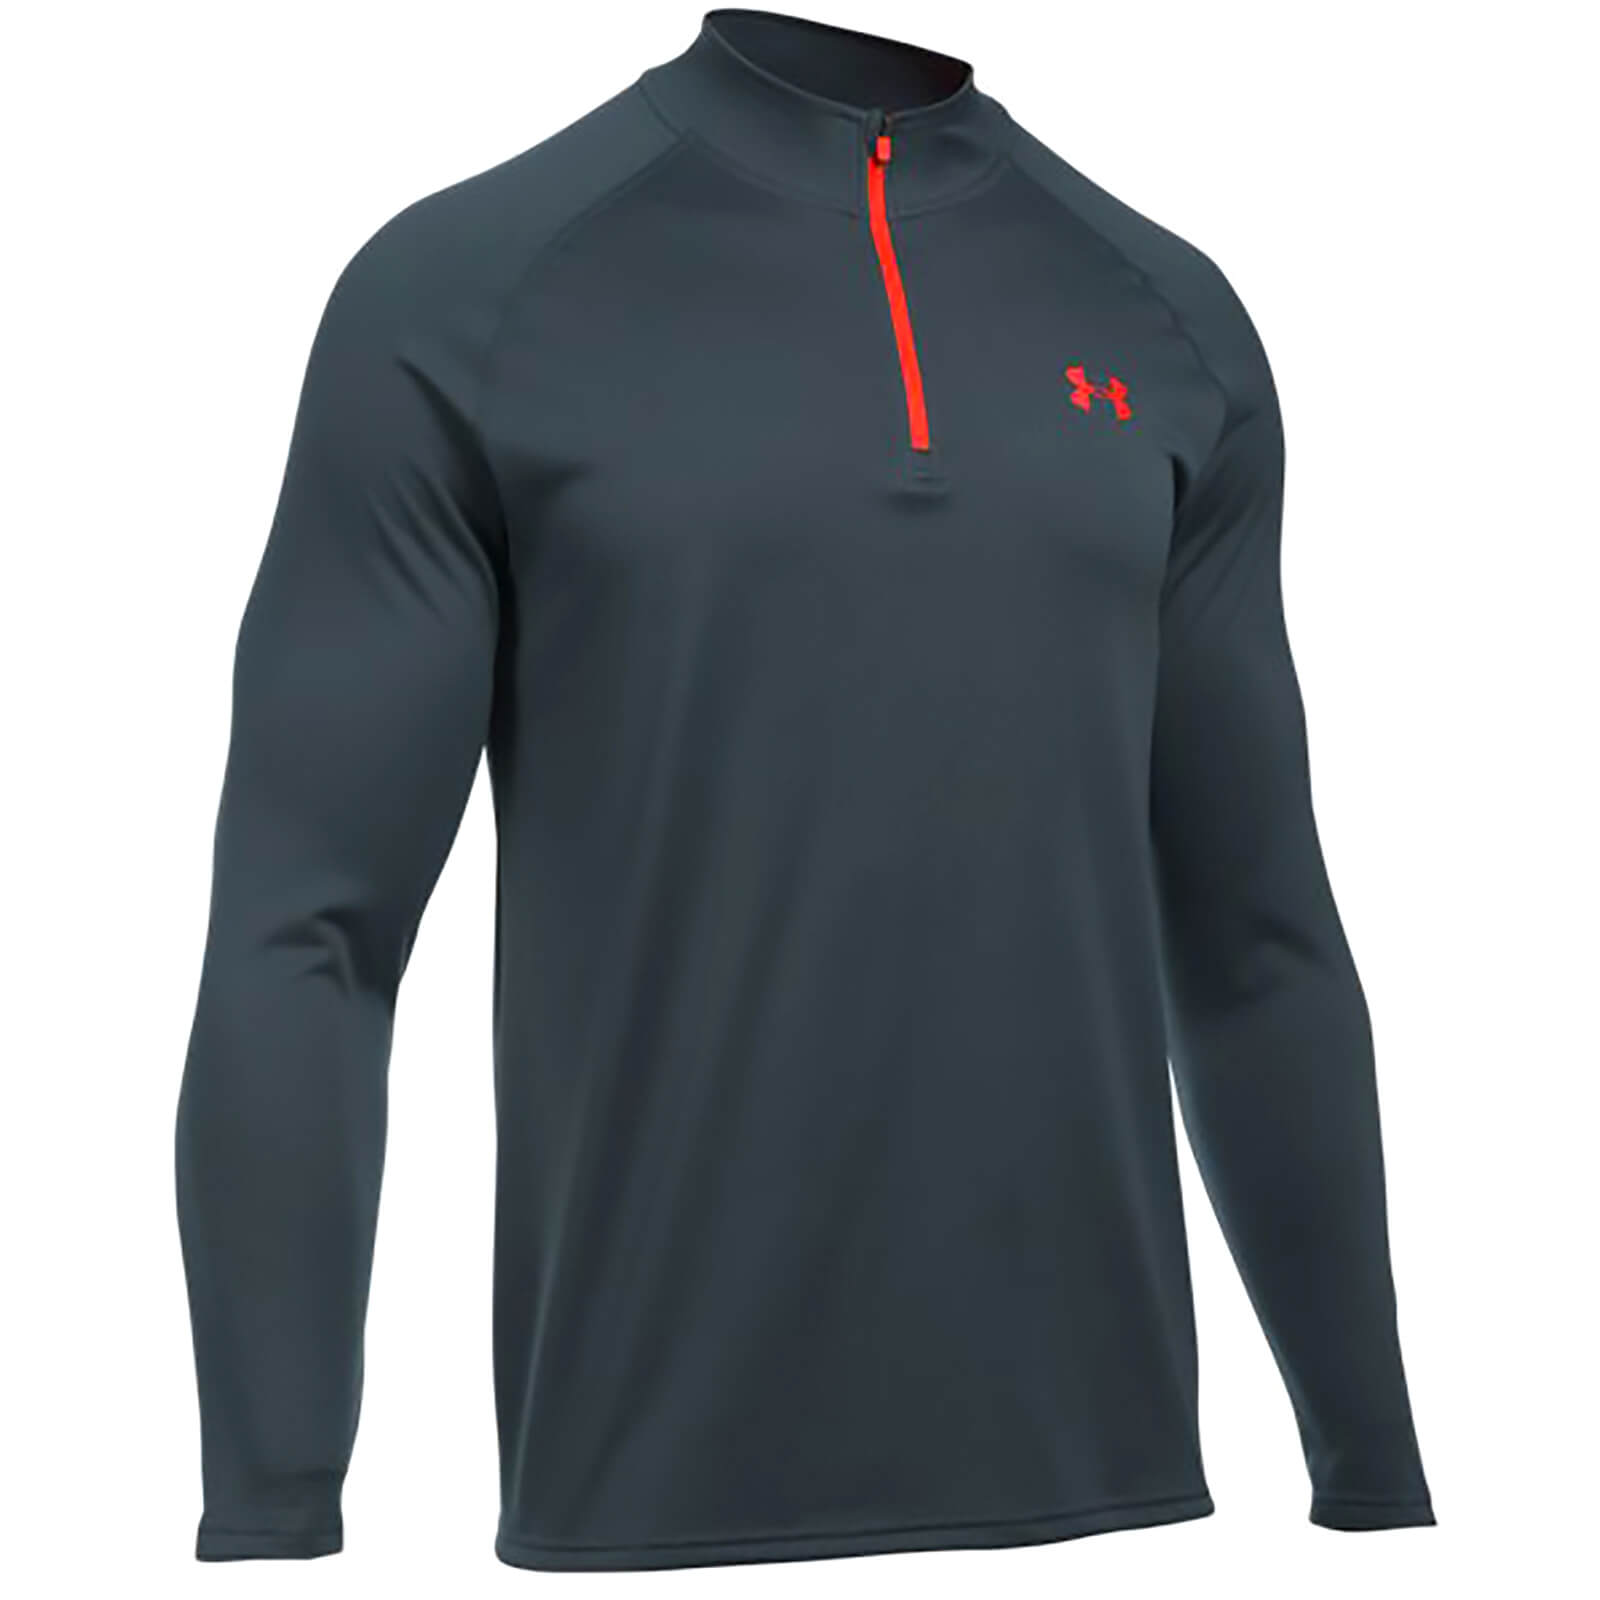 2b8cac9e6 Under Armour Men's Tech 1/4 Zip Long Sleeve Top - Stealth Grey/Phoenix Fire  | ProBikeKit.com